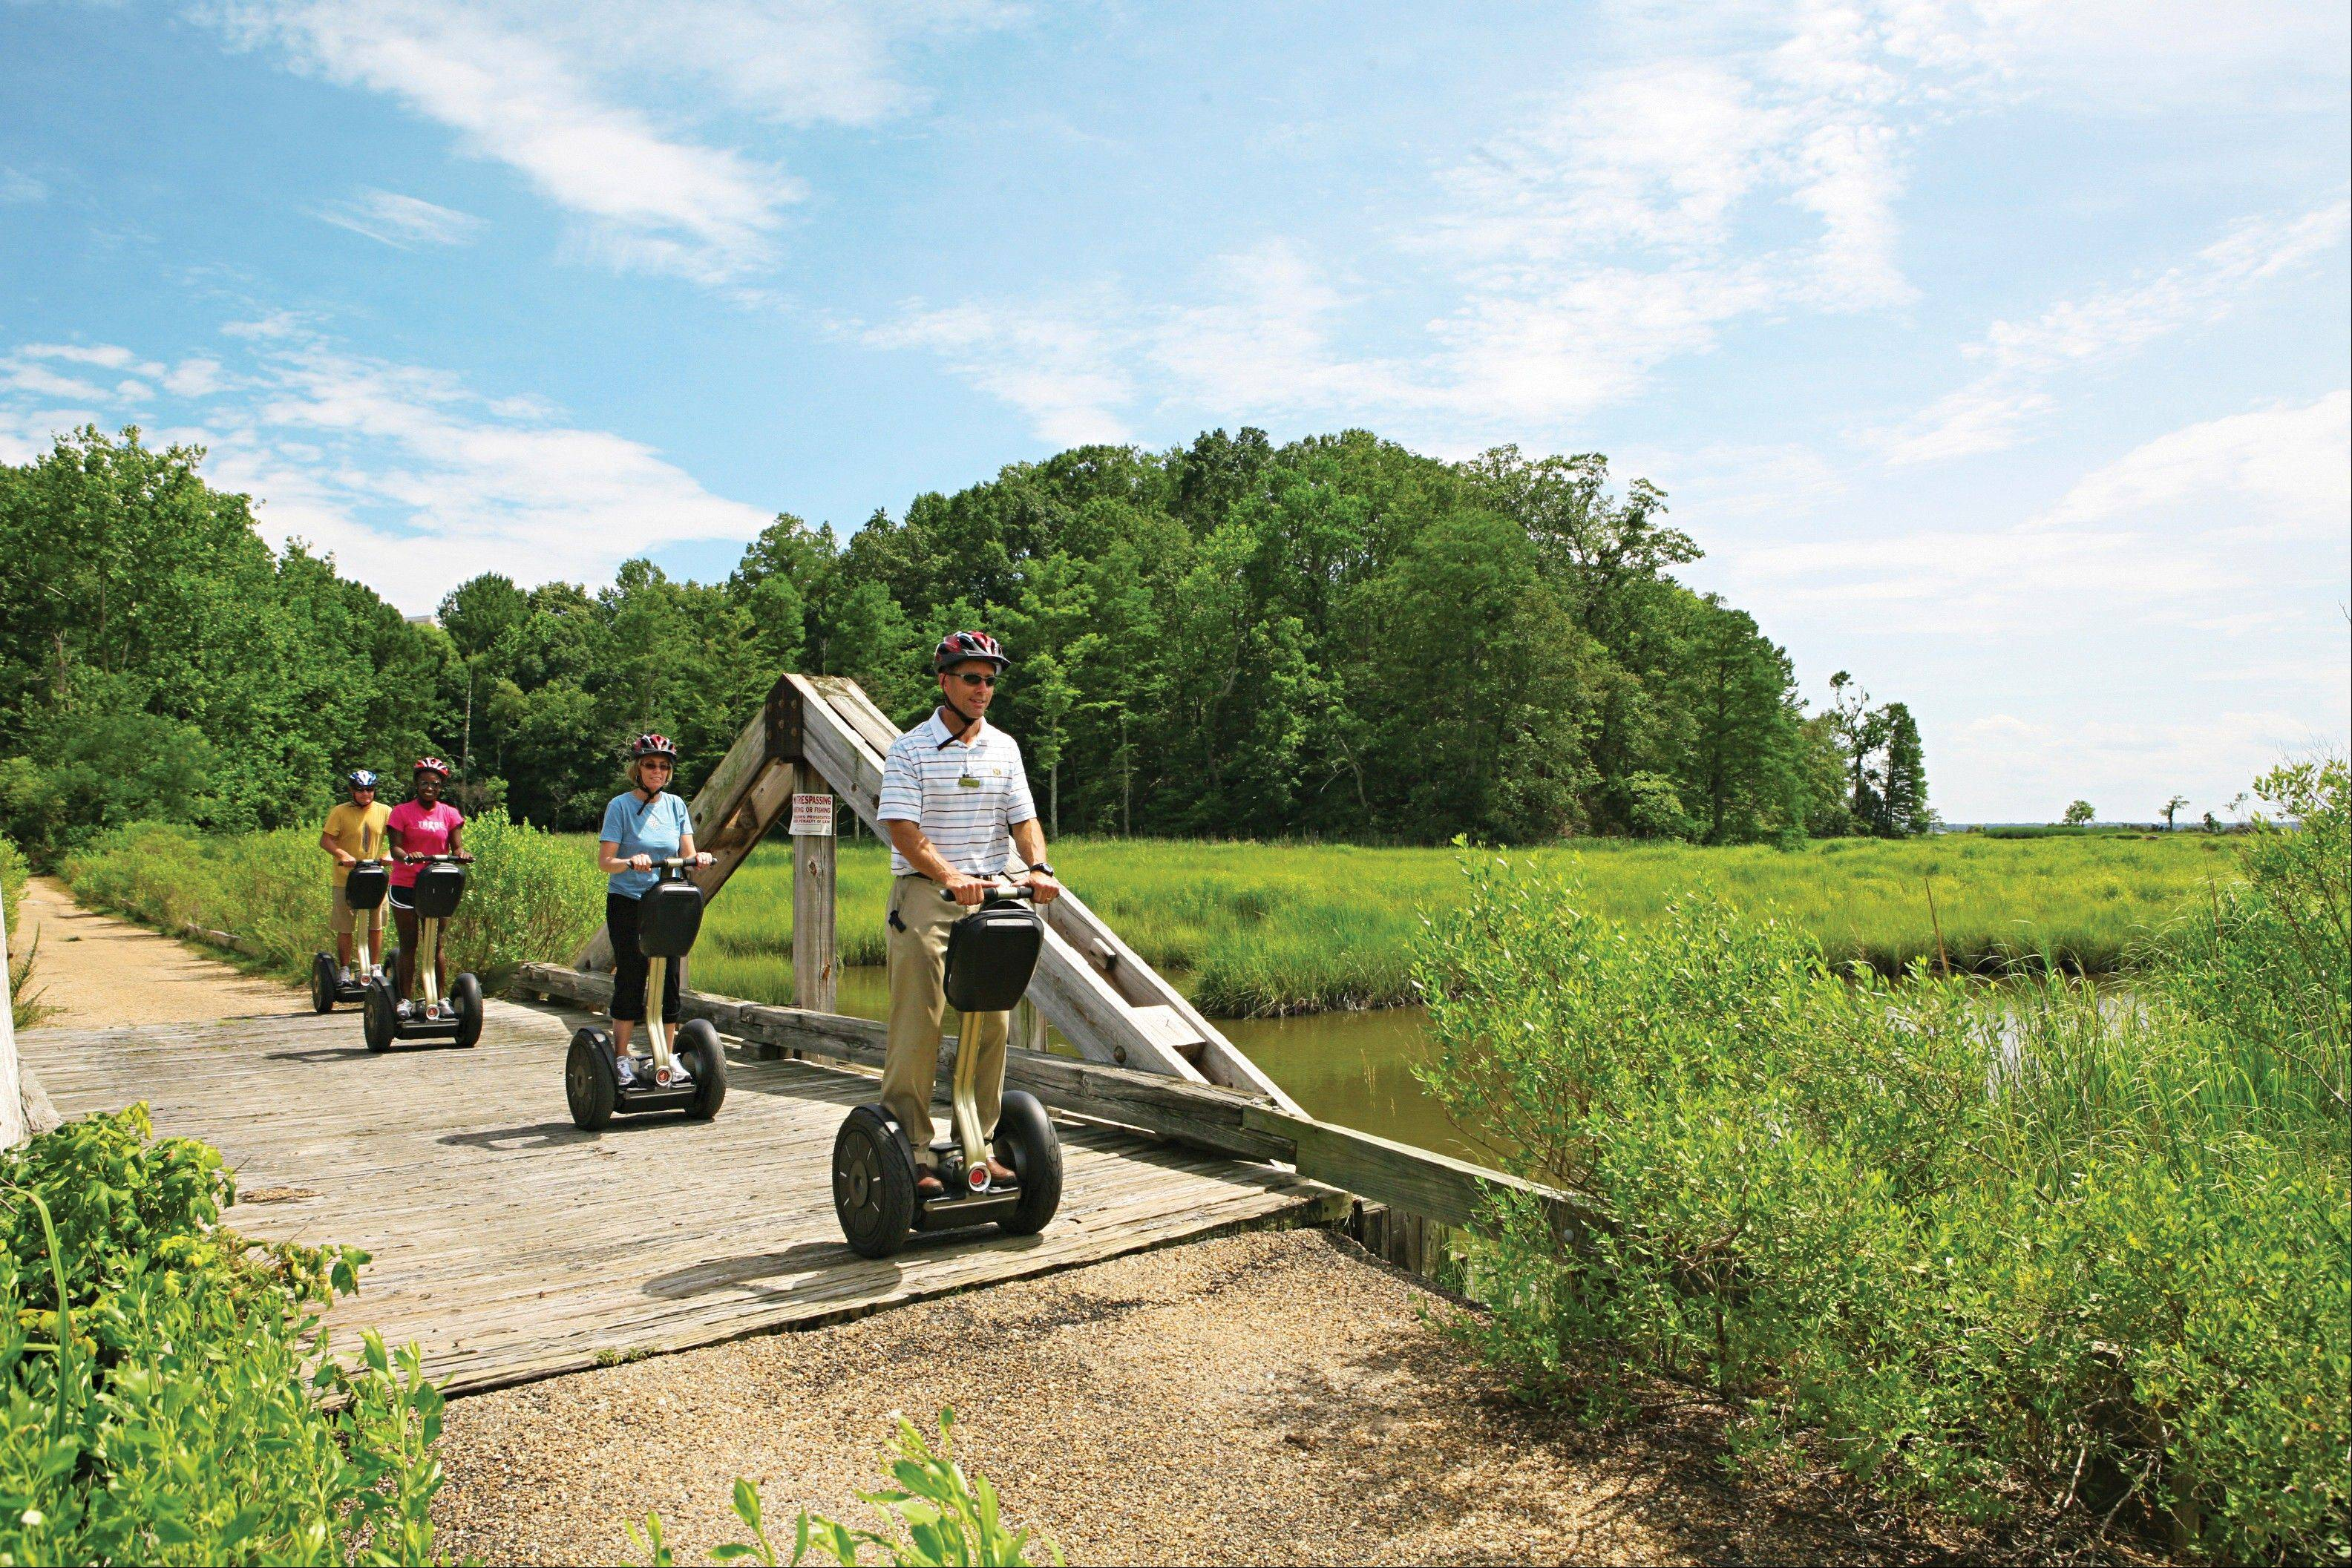 Kingsmill Resort's director of sports, Kevin Dry, leads a Segway tour on the resort's grounds in Williamsburg, Va.